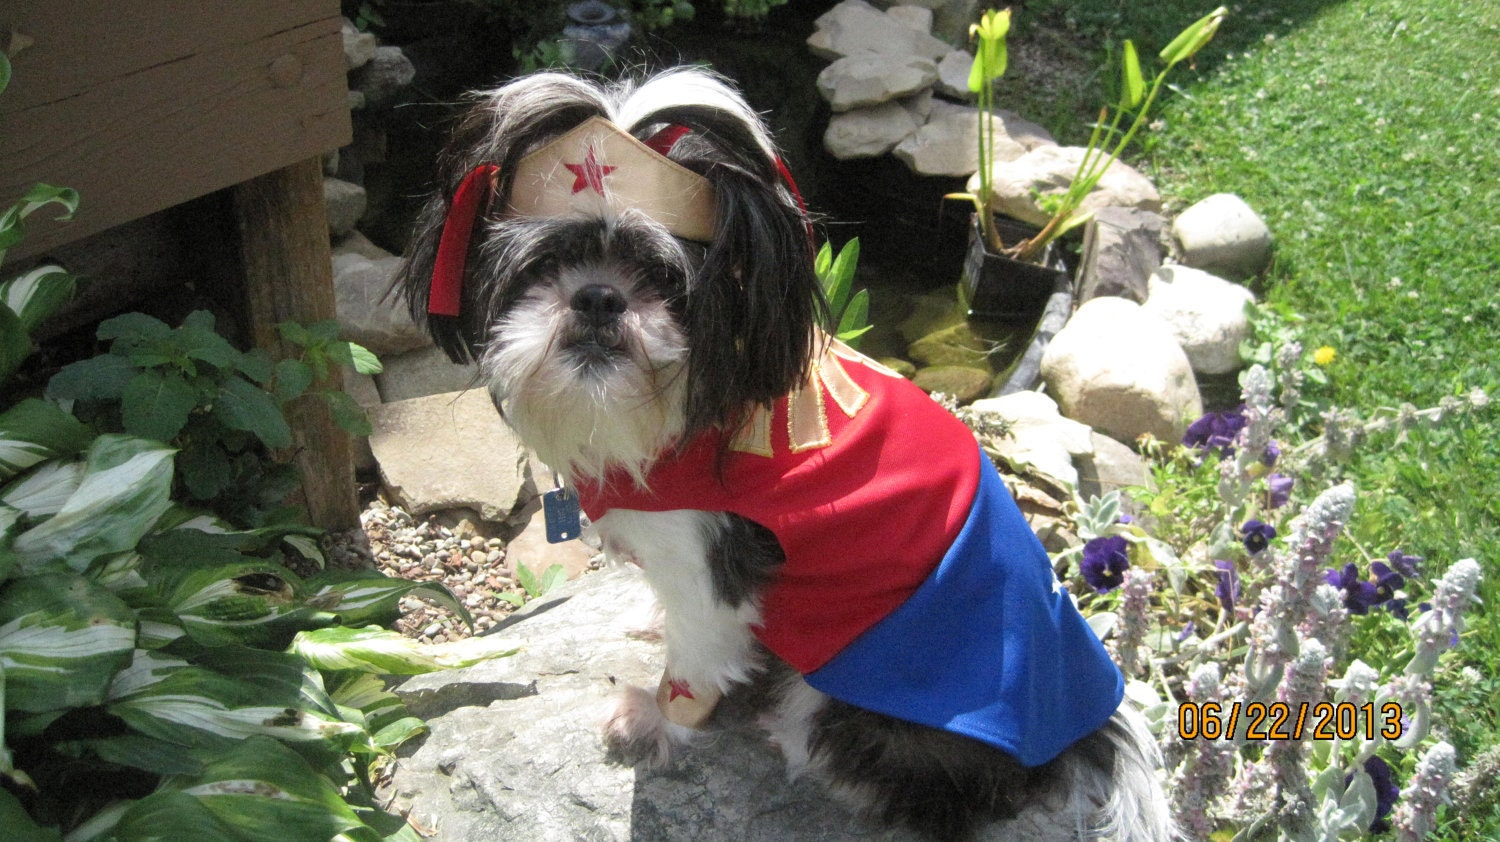 & Wonder Woman inspired Dog Costume/Outfit Size Extra Small- Extra Large